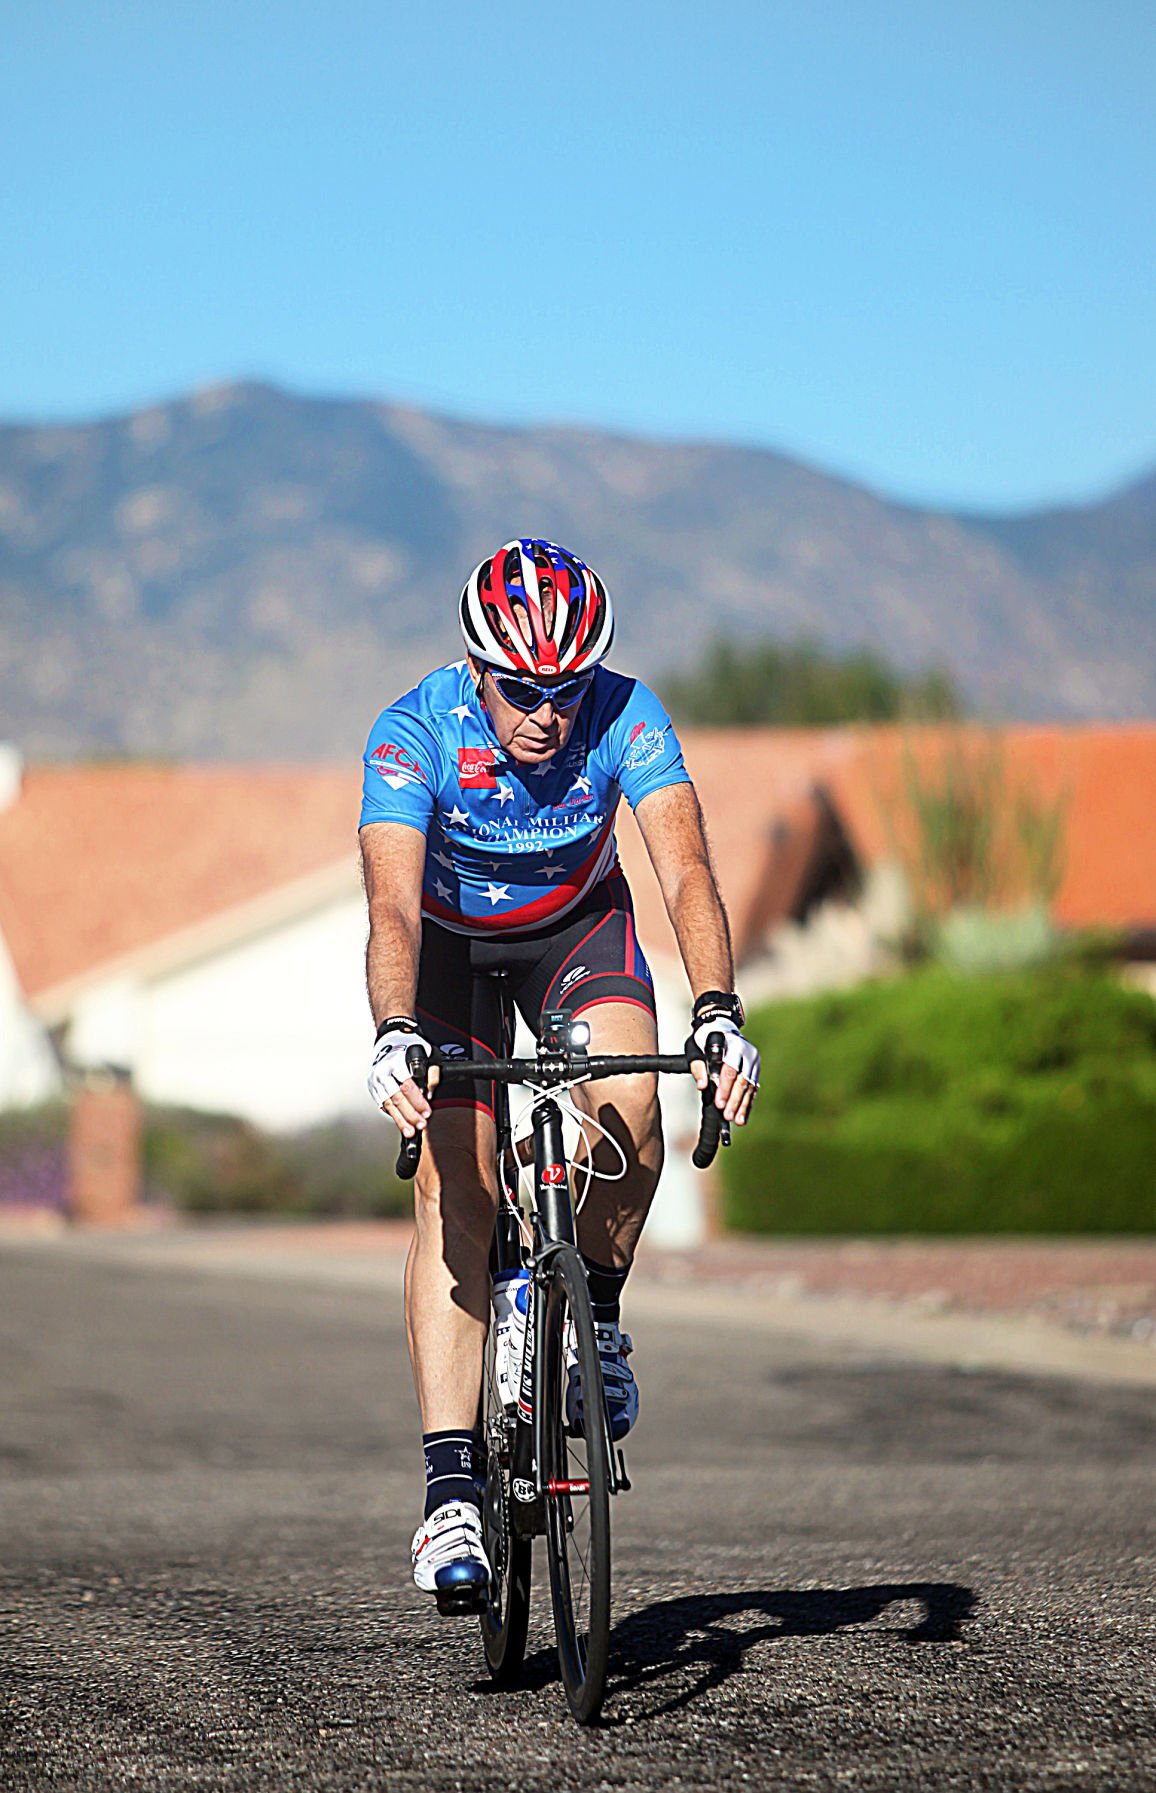 SV man combines love of bicycling, wish to assist others (copy)